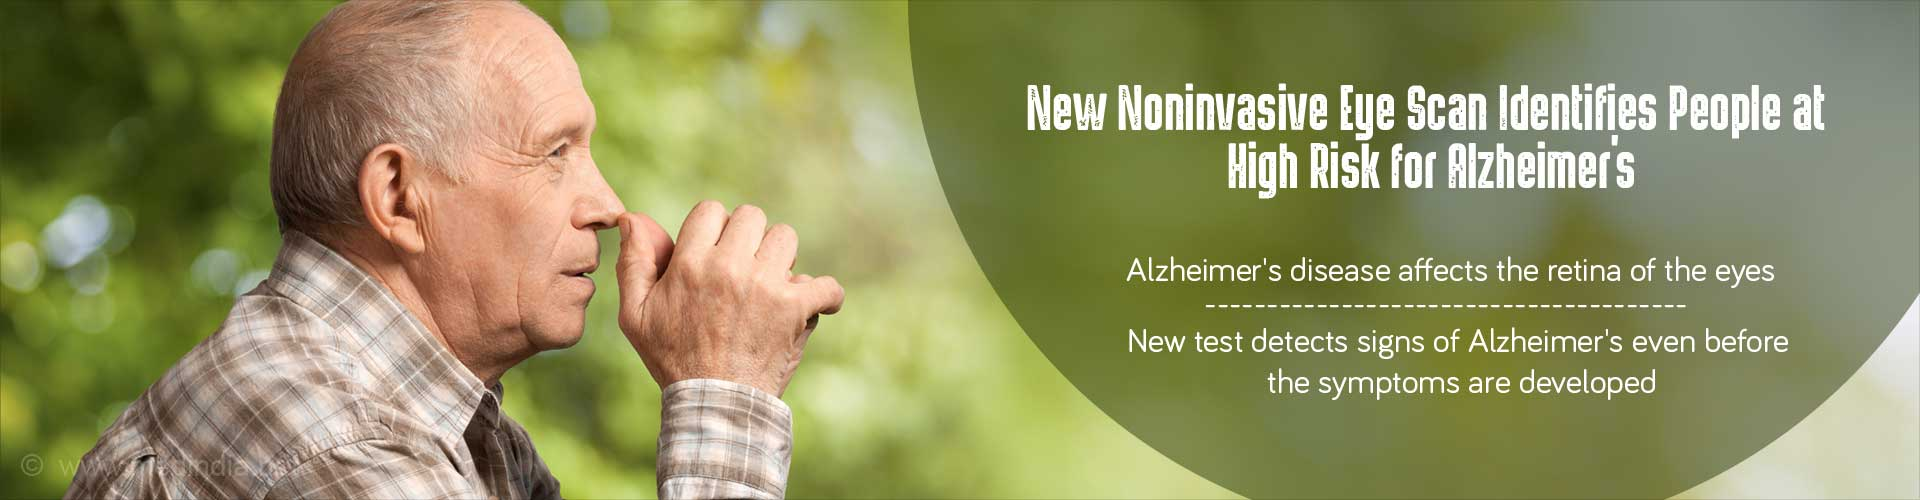 New Hope For Early Detection And Monitoring Of Alzheimer''s Disease